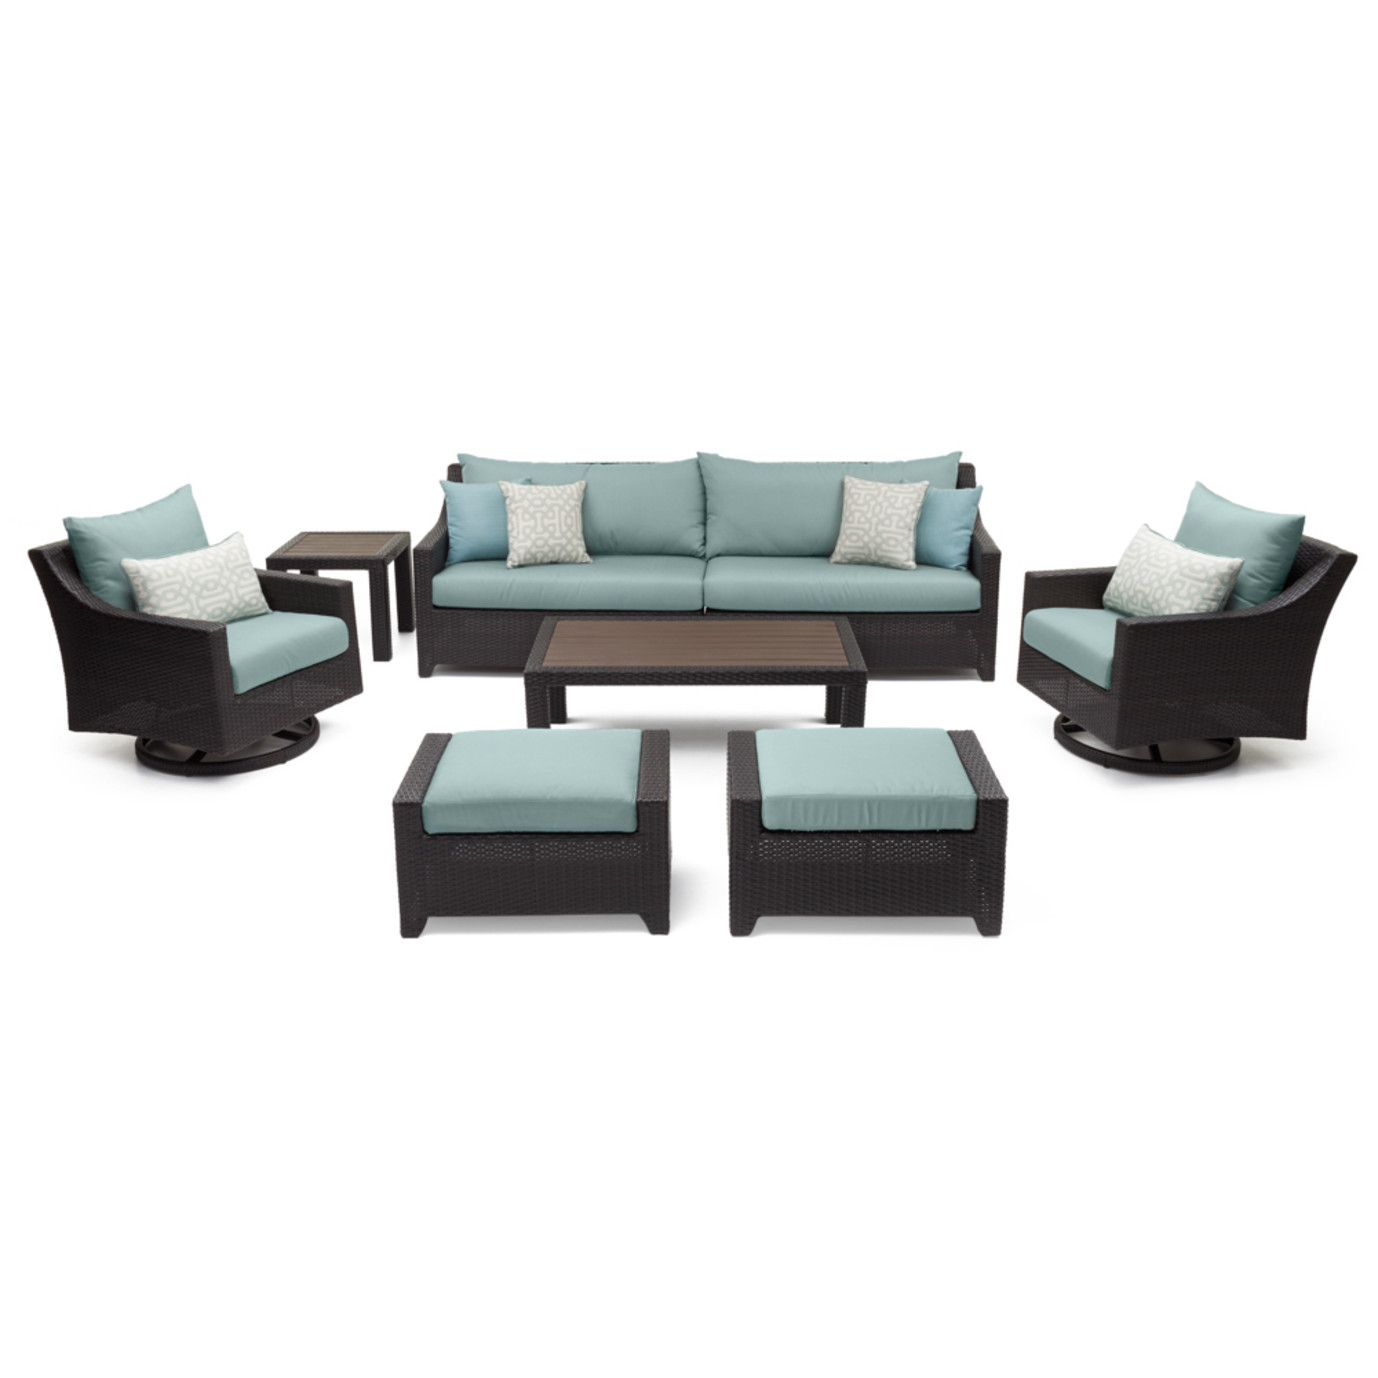 Deco Deluxe 8pc Sofa Amp Club Chair Set Spa Blue Rst Brands